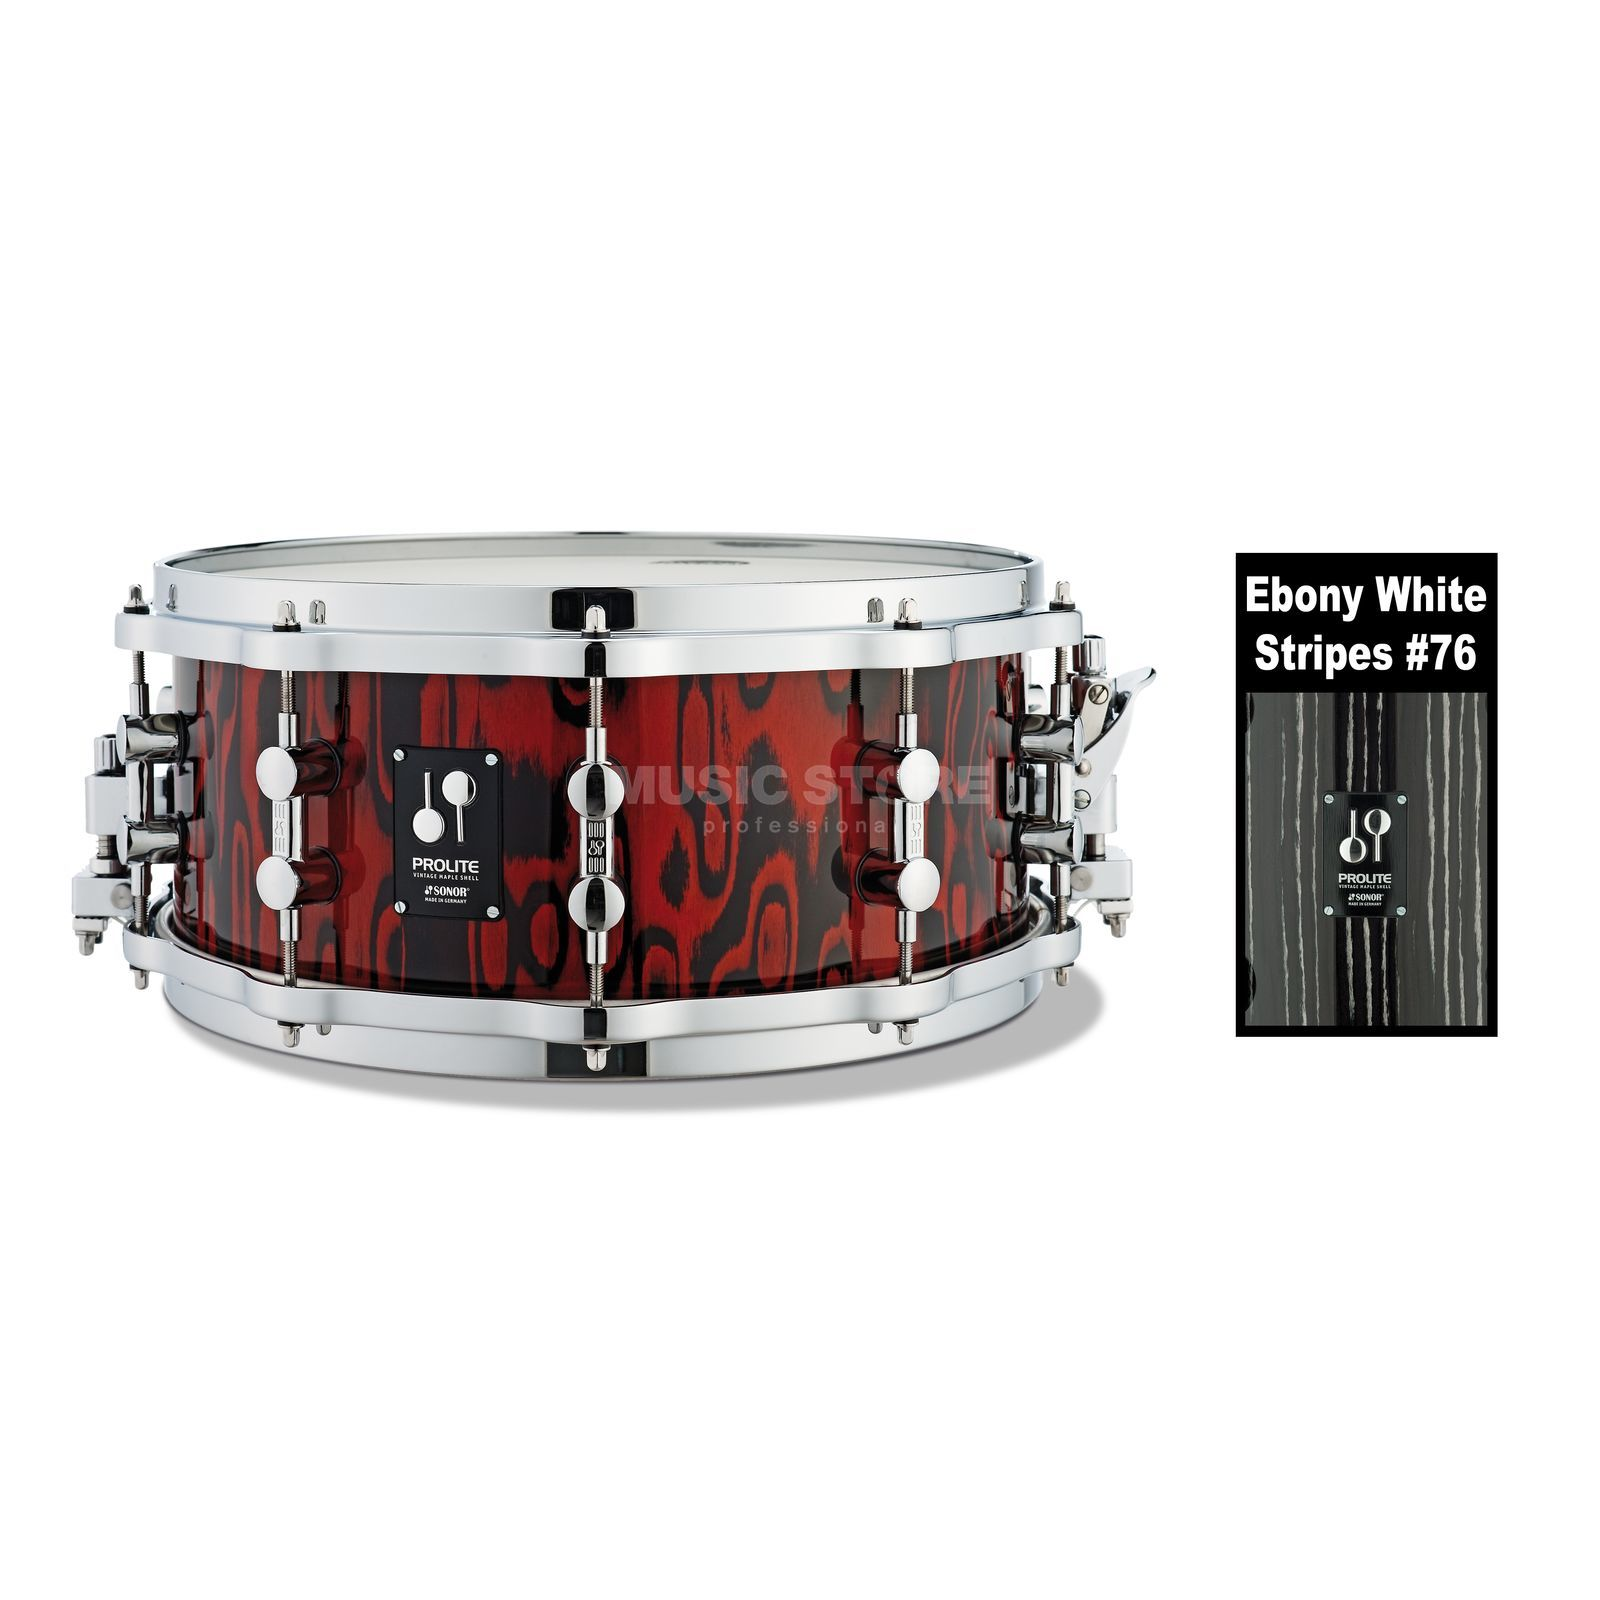 "Sonor ProLite Snare PL 12 1406 SDWD, 14""x6"",Ebony White Stripes #76 Produktbild"